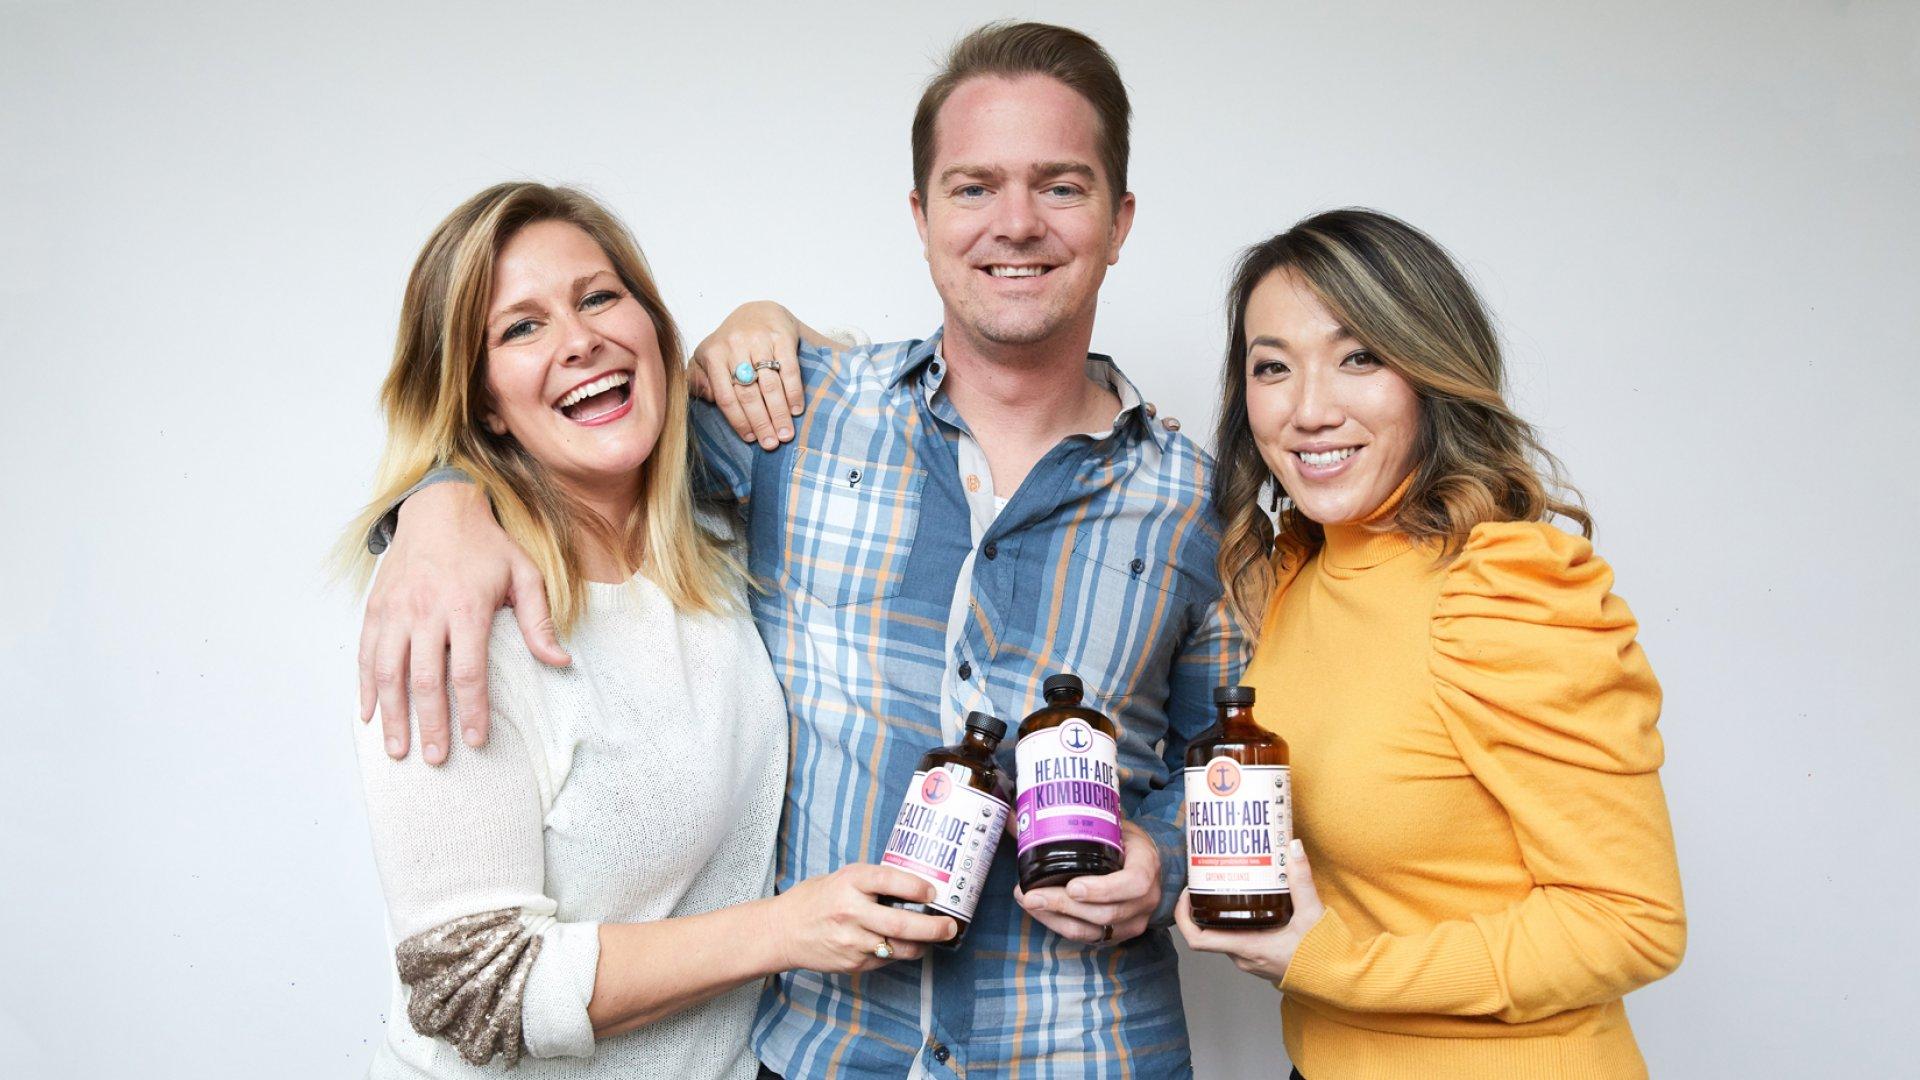 Daina Trout (left), Justin Trout, and Vanessa Dew, co-founders of Health-Ade Kombucha.